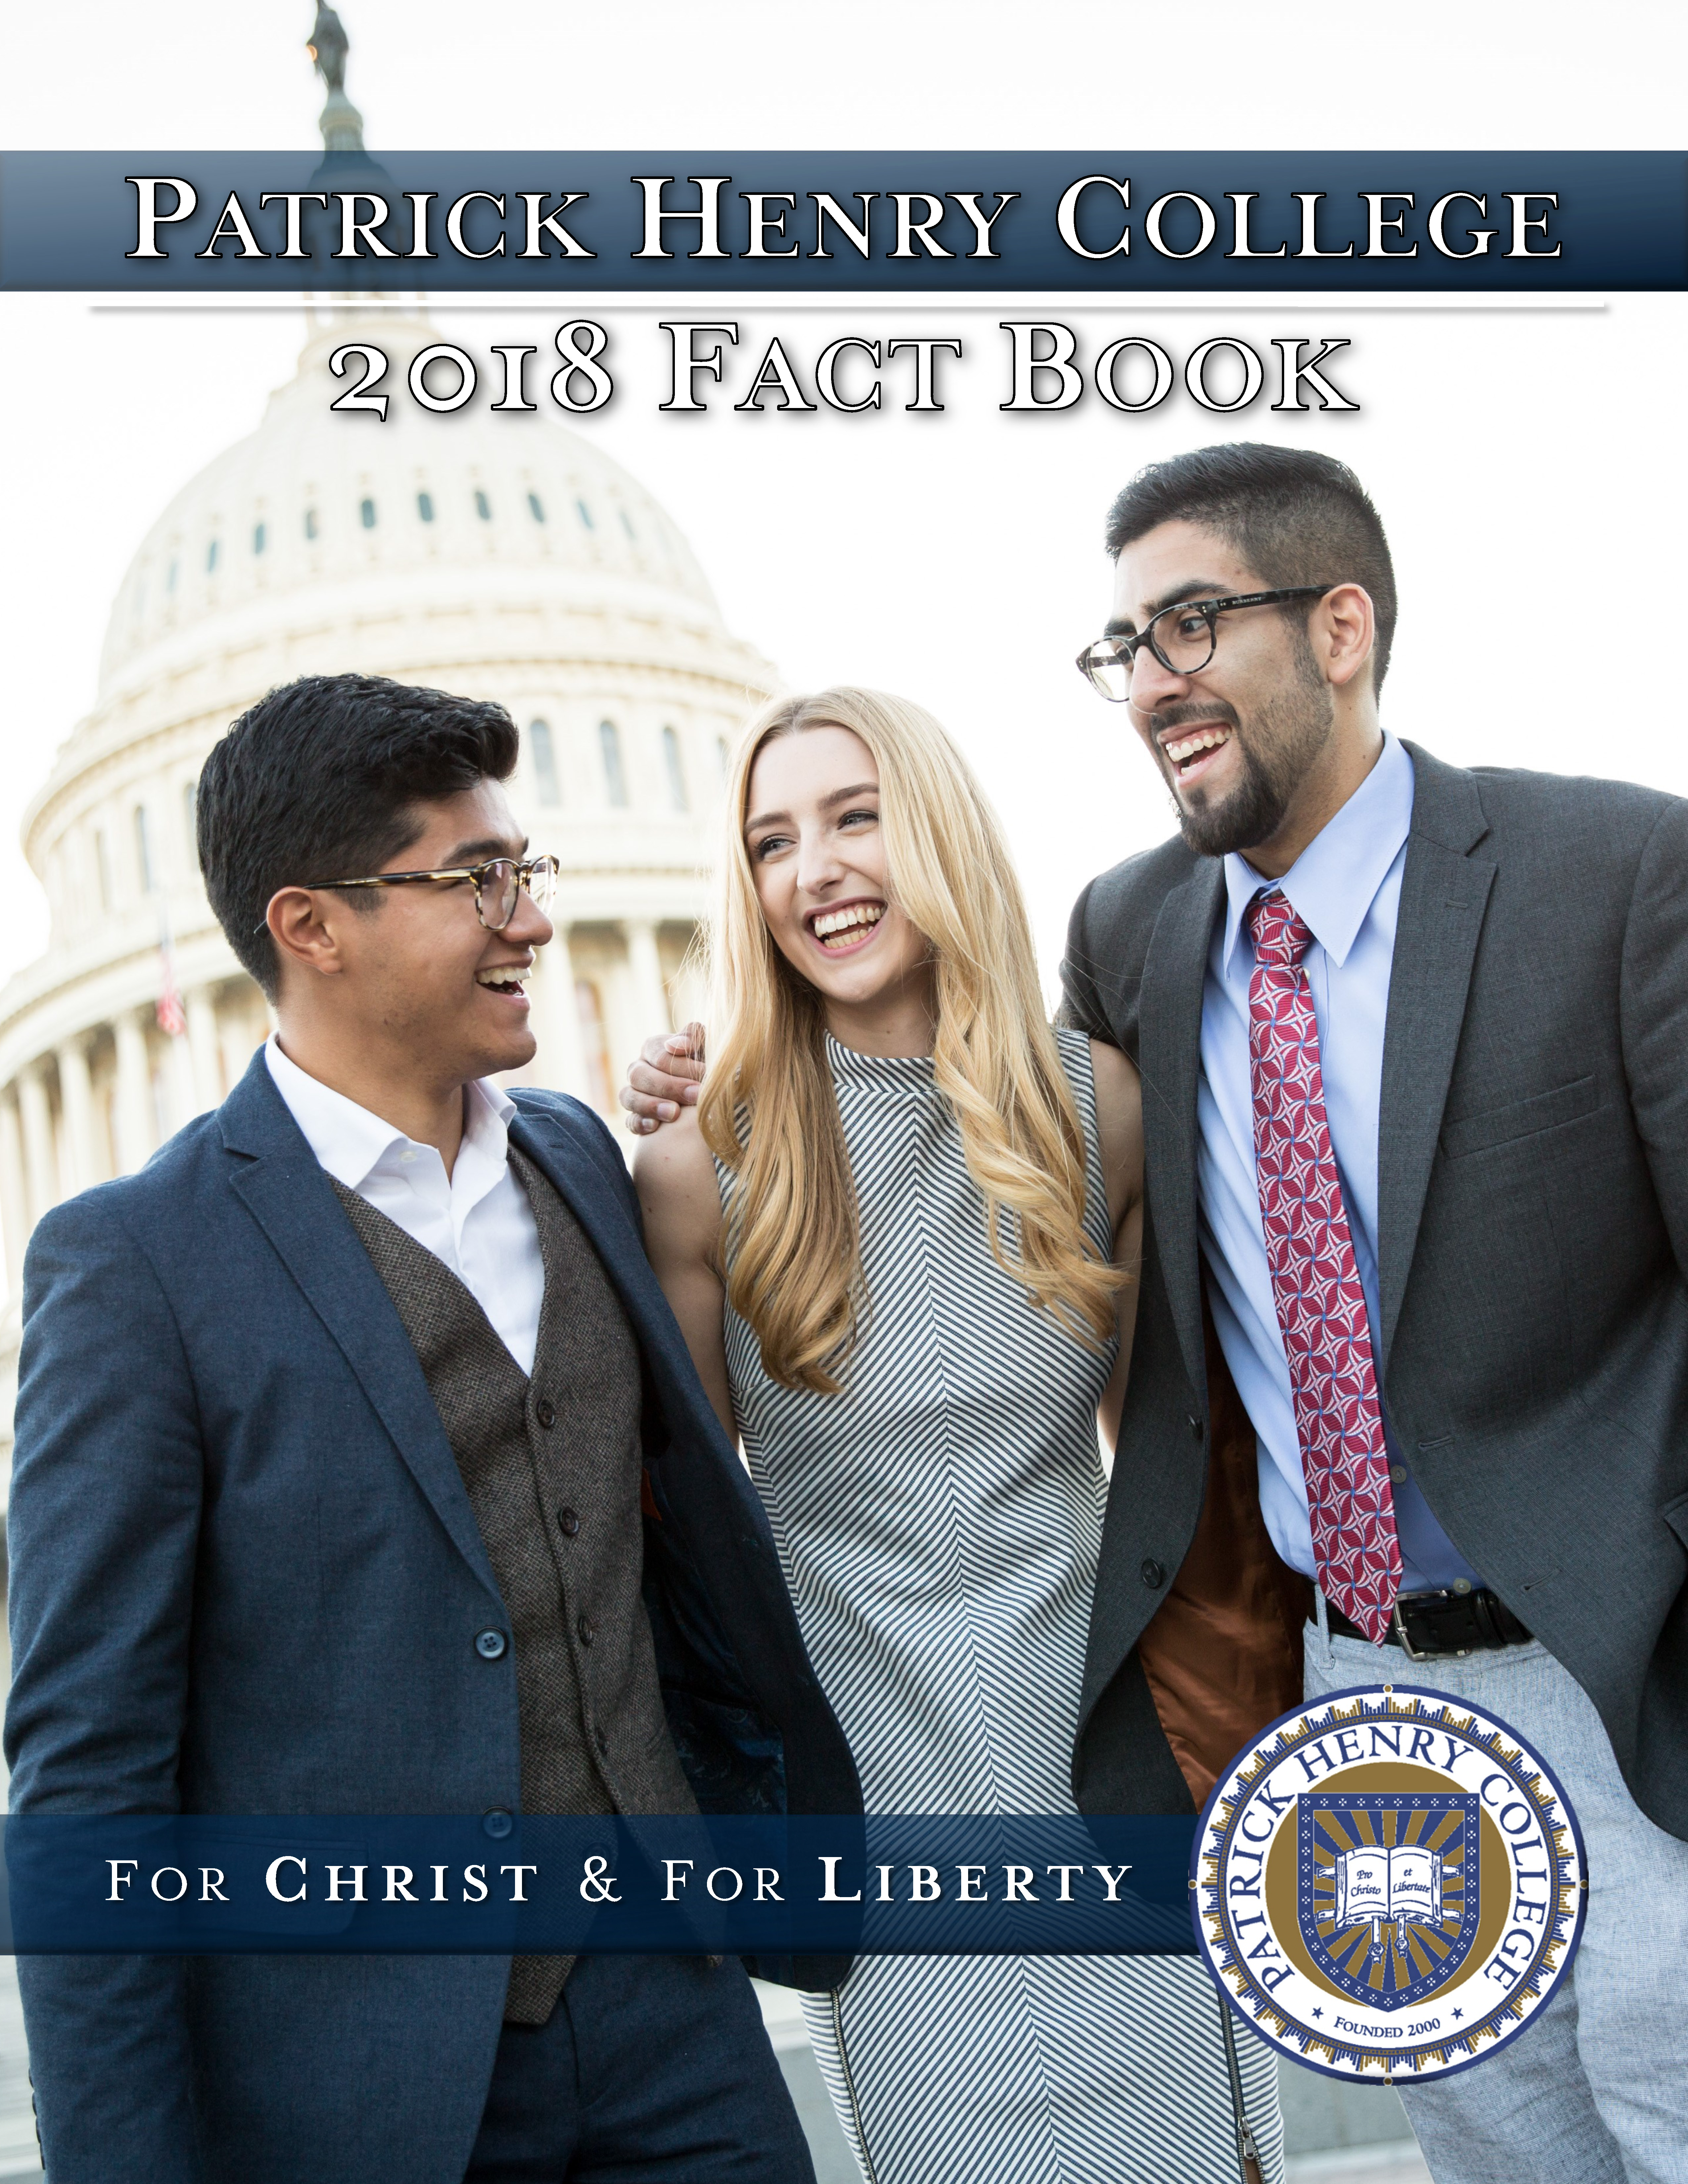 Patrick Henry College 2018 Factbook